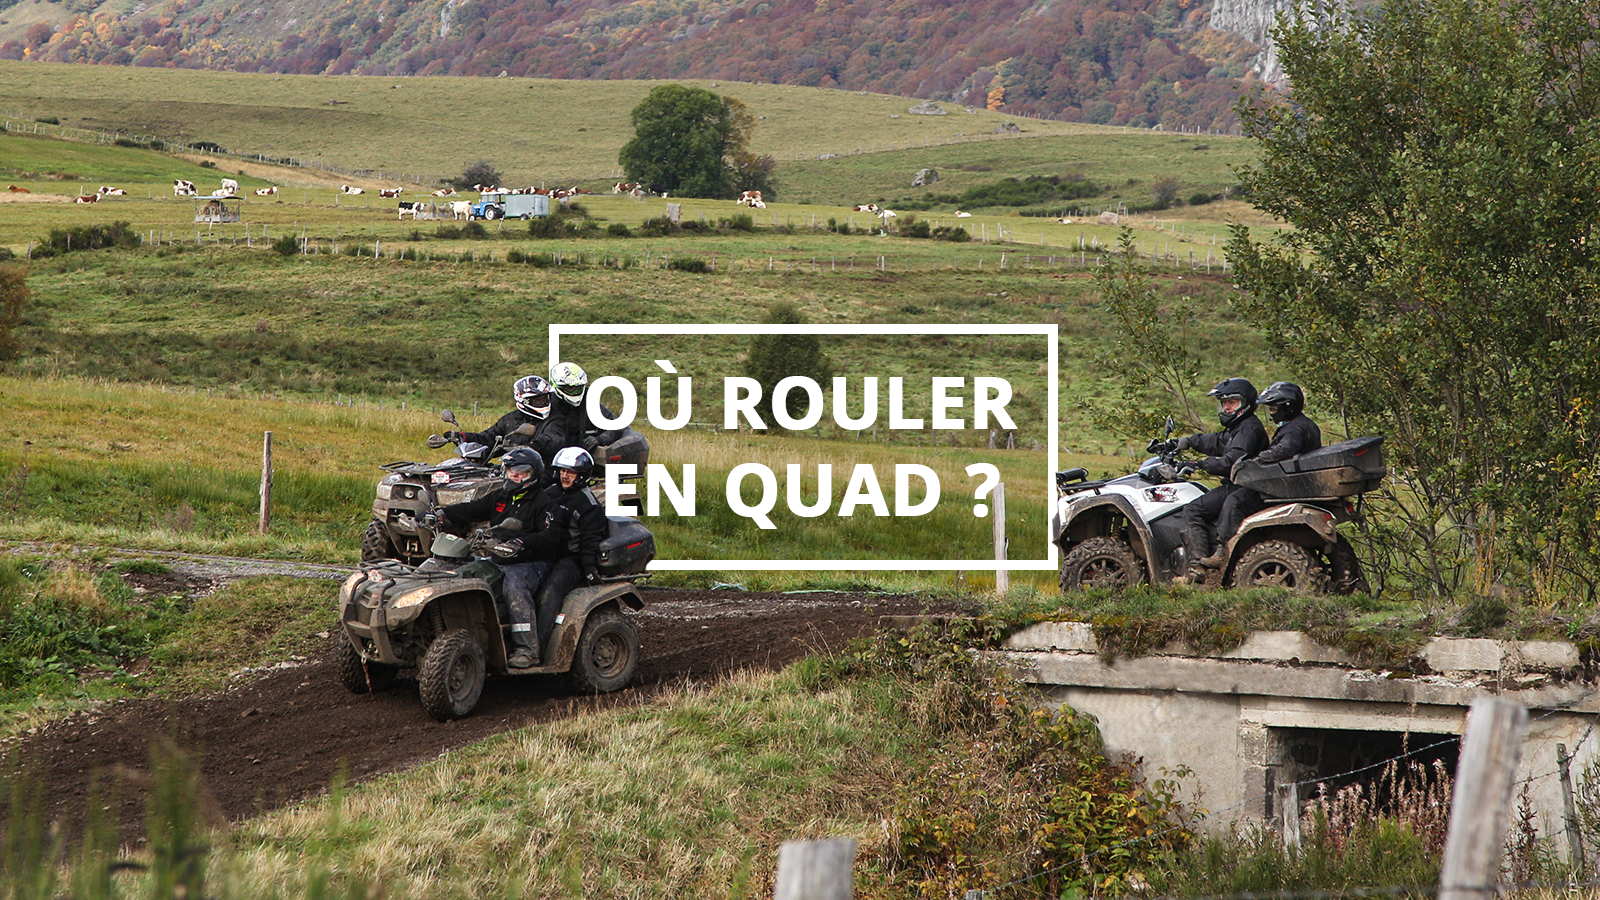 ou-rouler-quad-featured